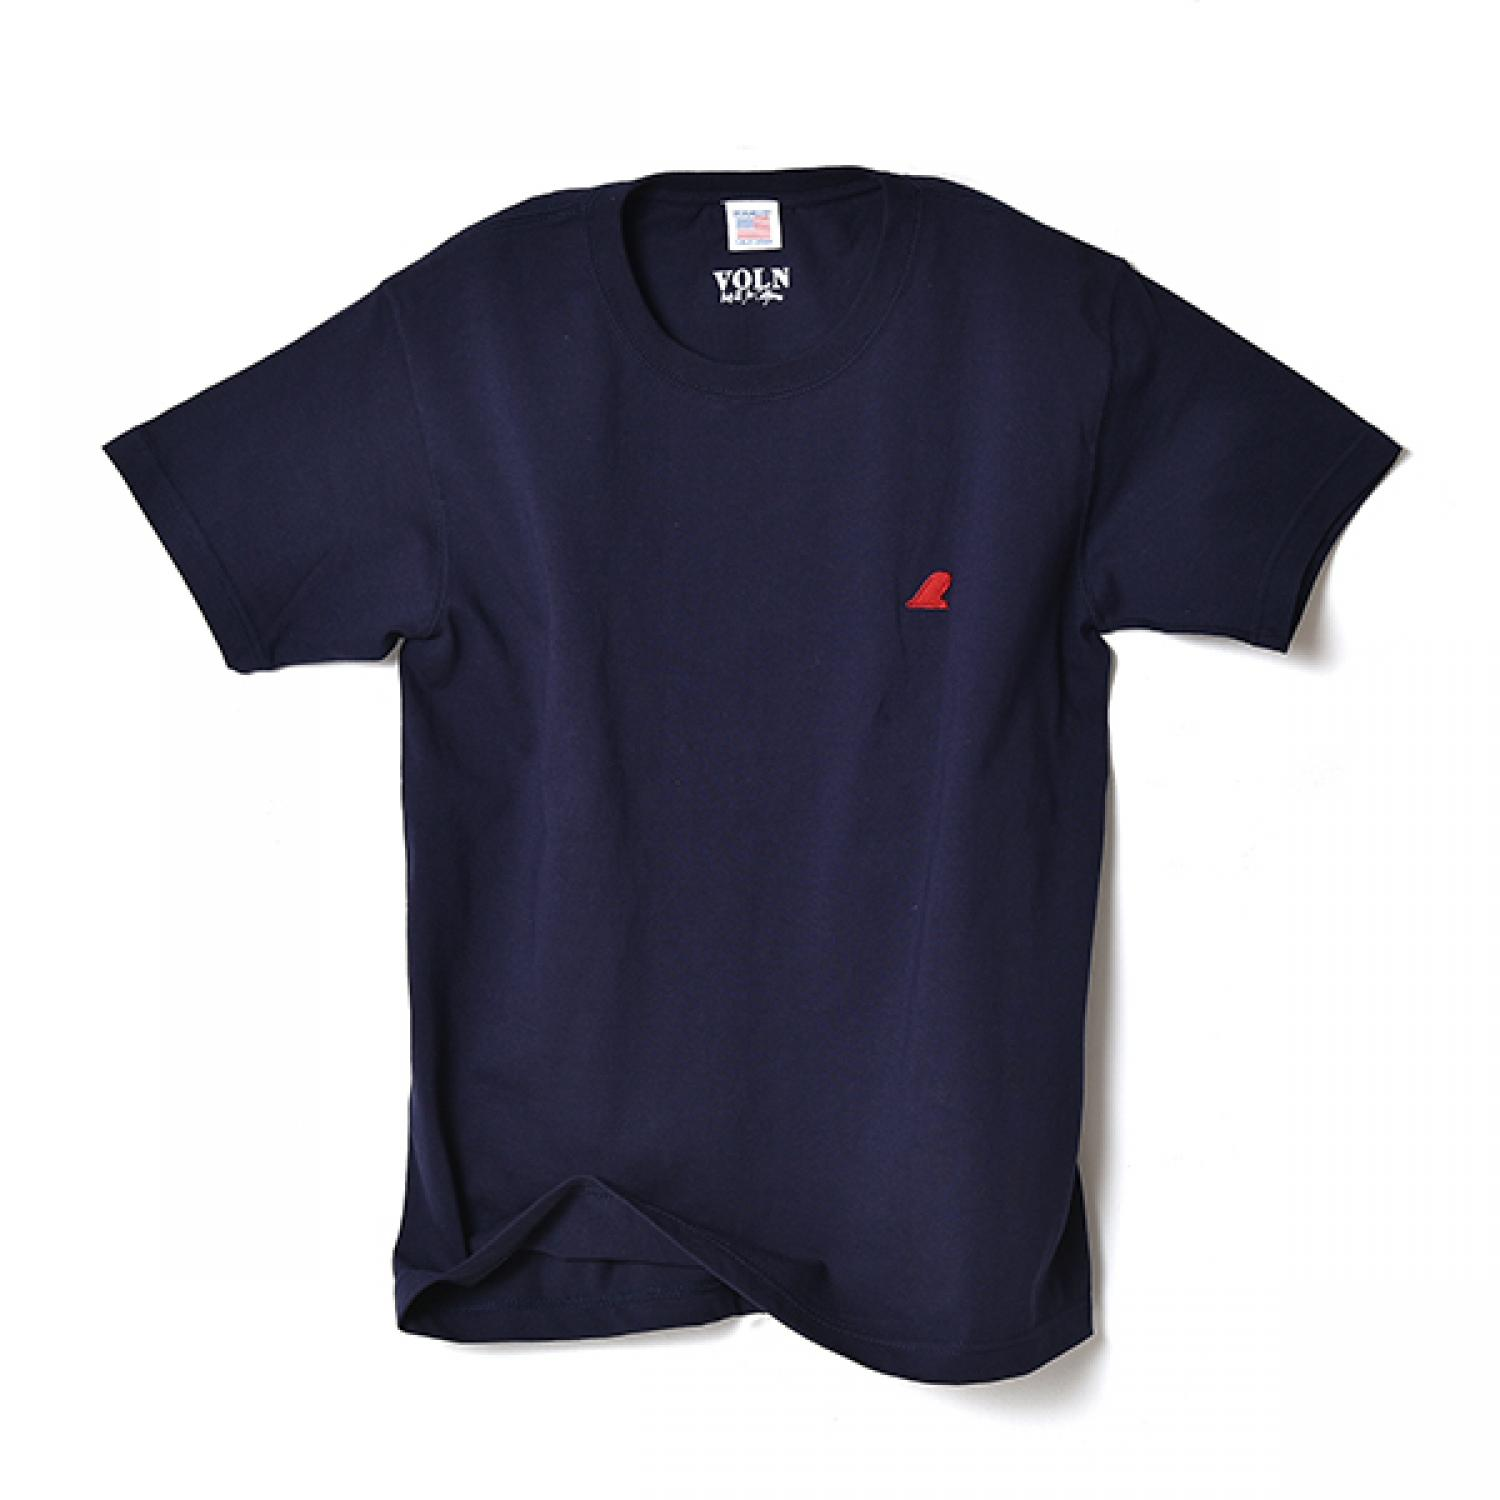 VOLN CREW NECK T-SHIRT  RED FIN  NAVY